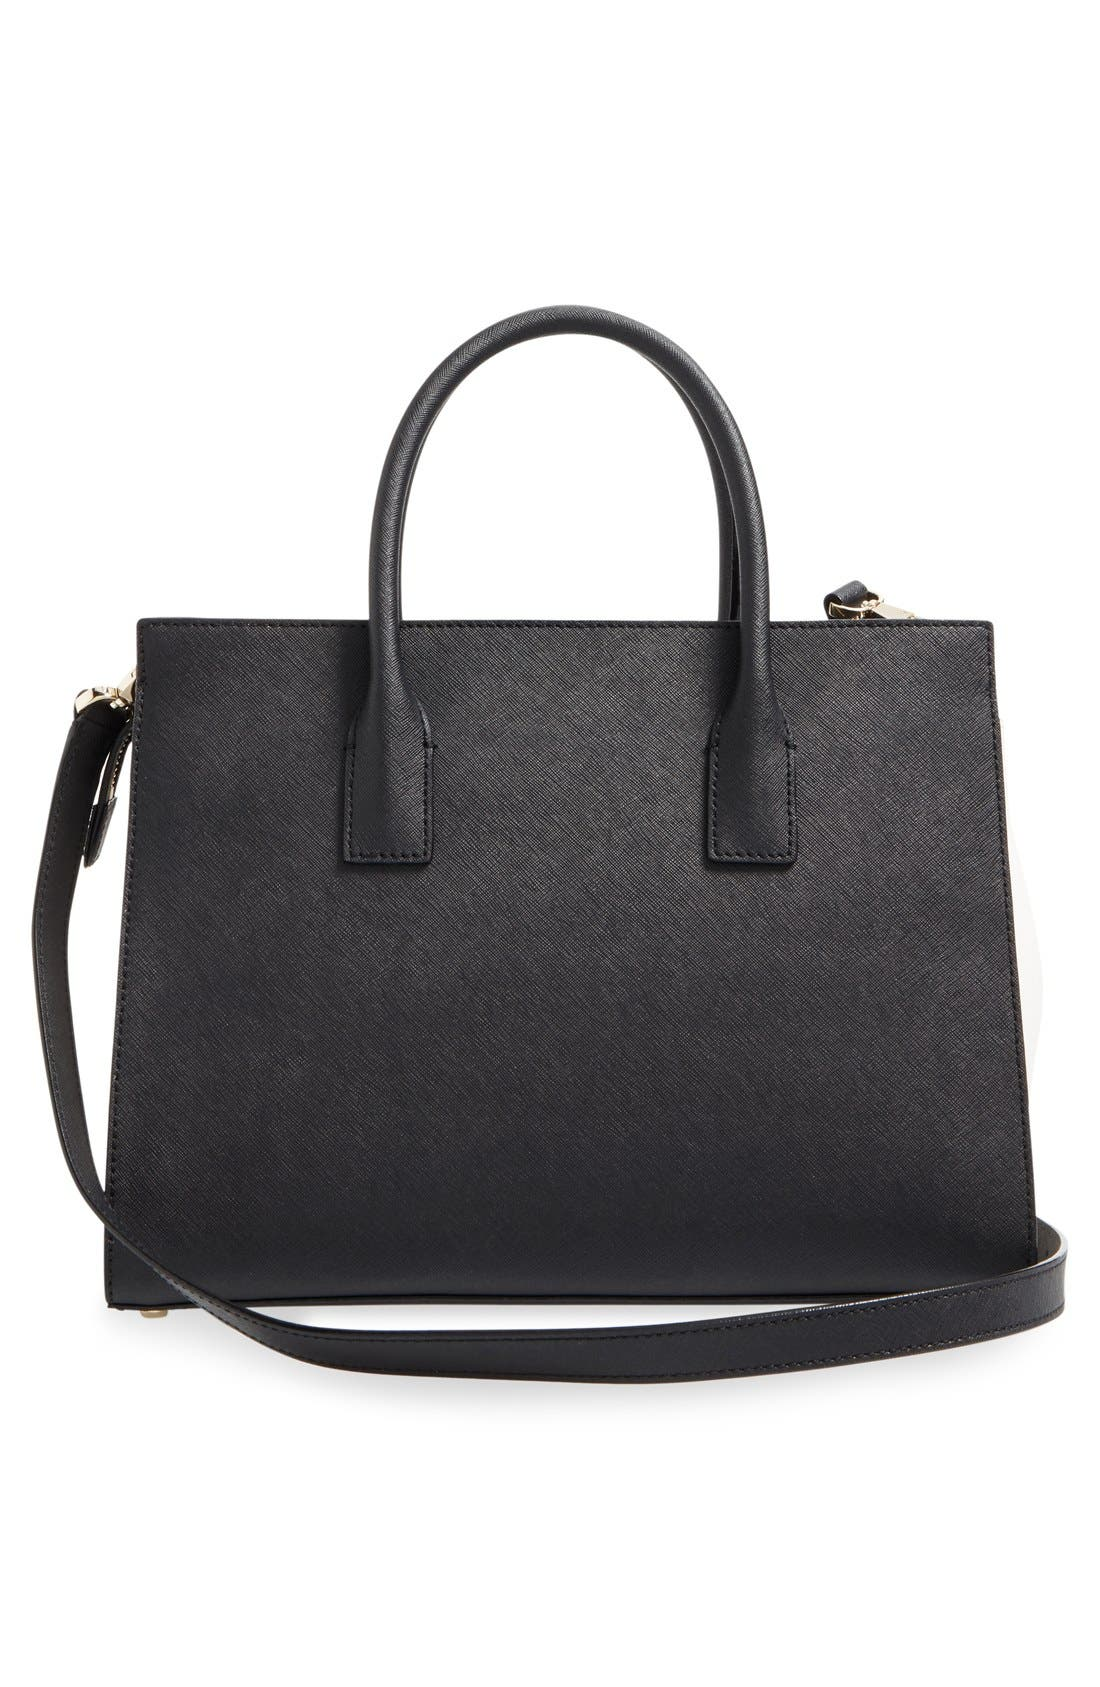 cameron street - candace leather satchel,                             Alternate thumbnail 68, color,